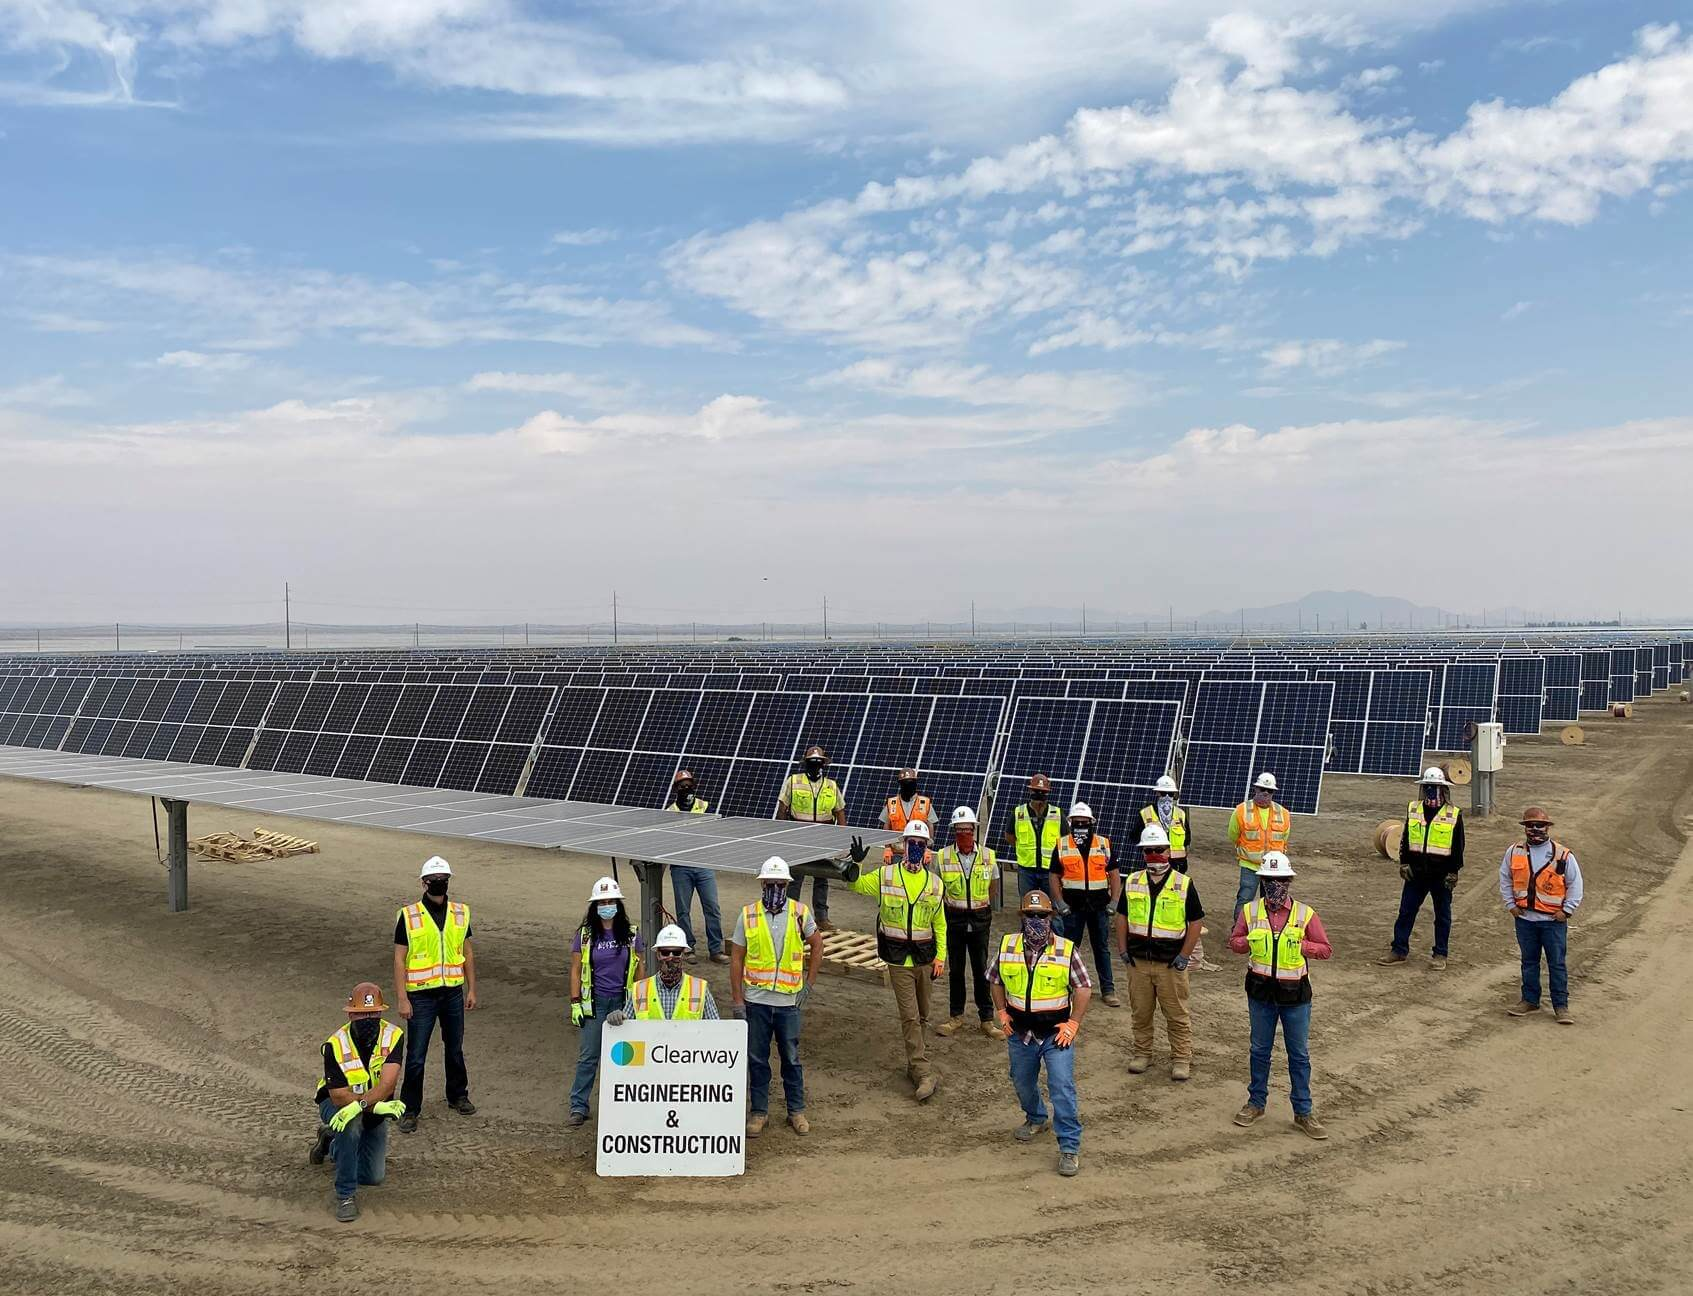 Clearway powers the Rosamond Central Solar Project